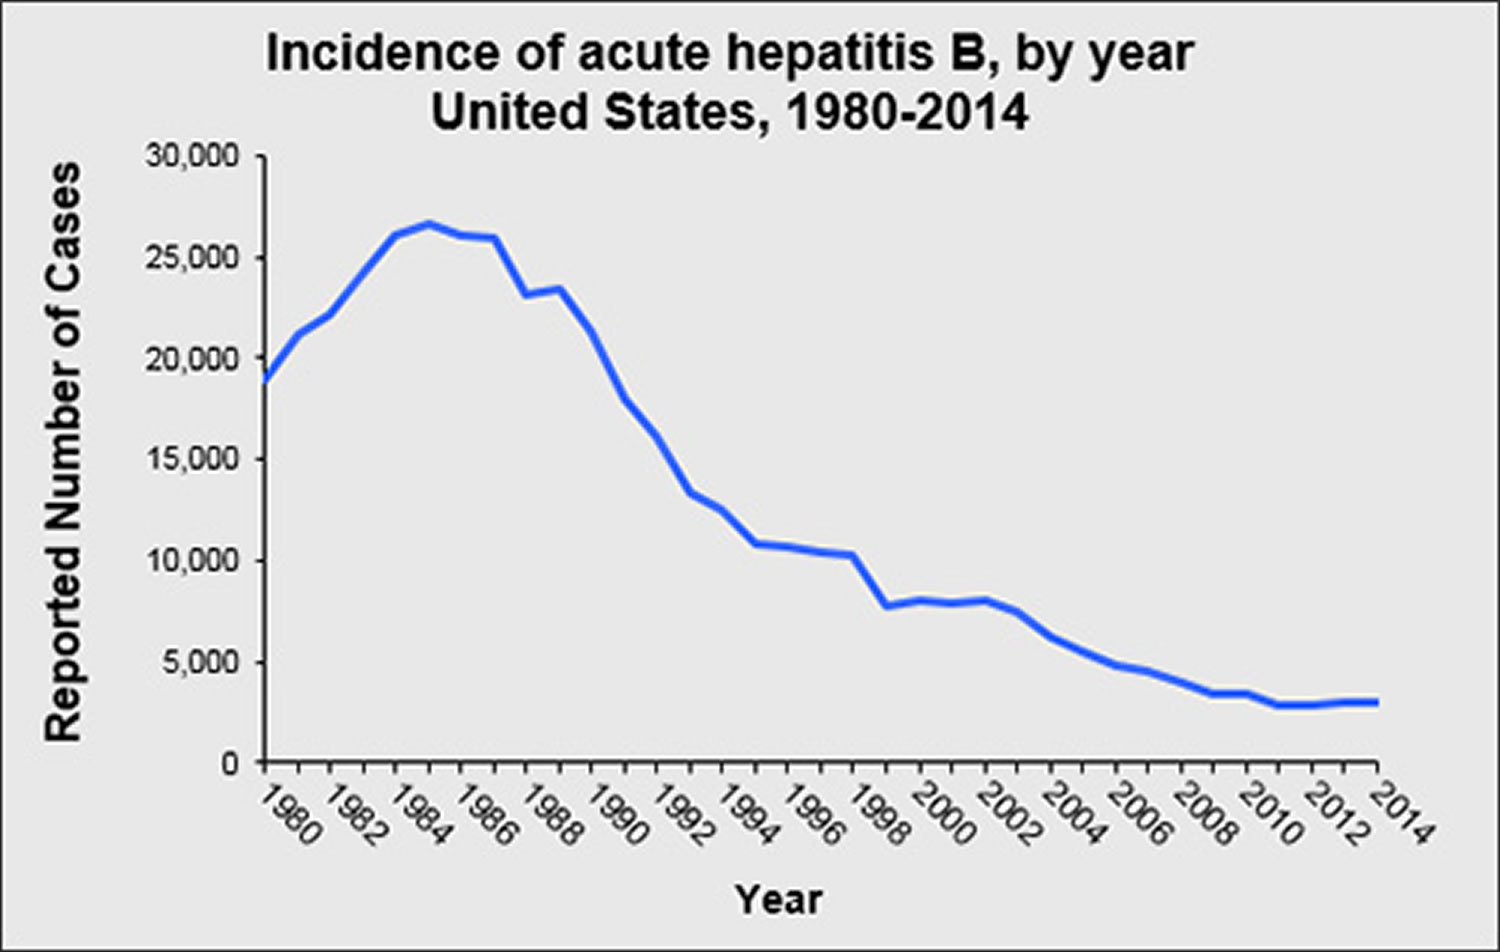 hepatitis B - incidence 2014